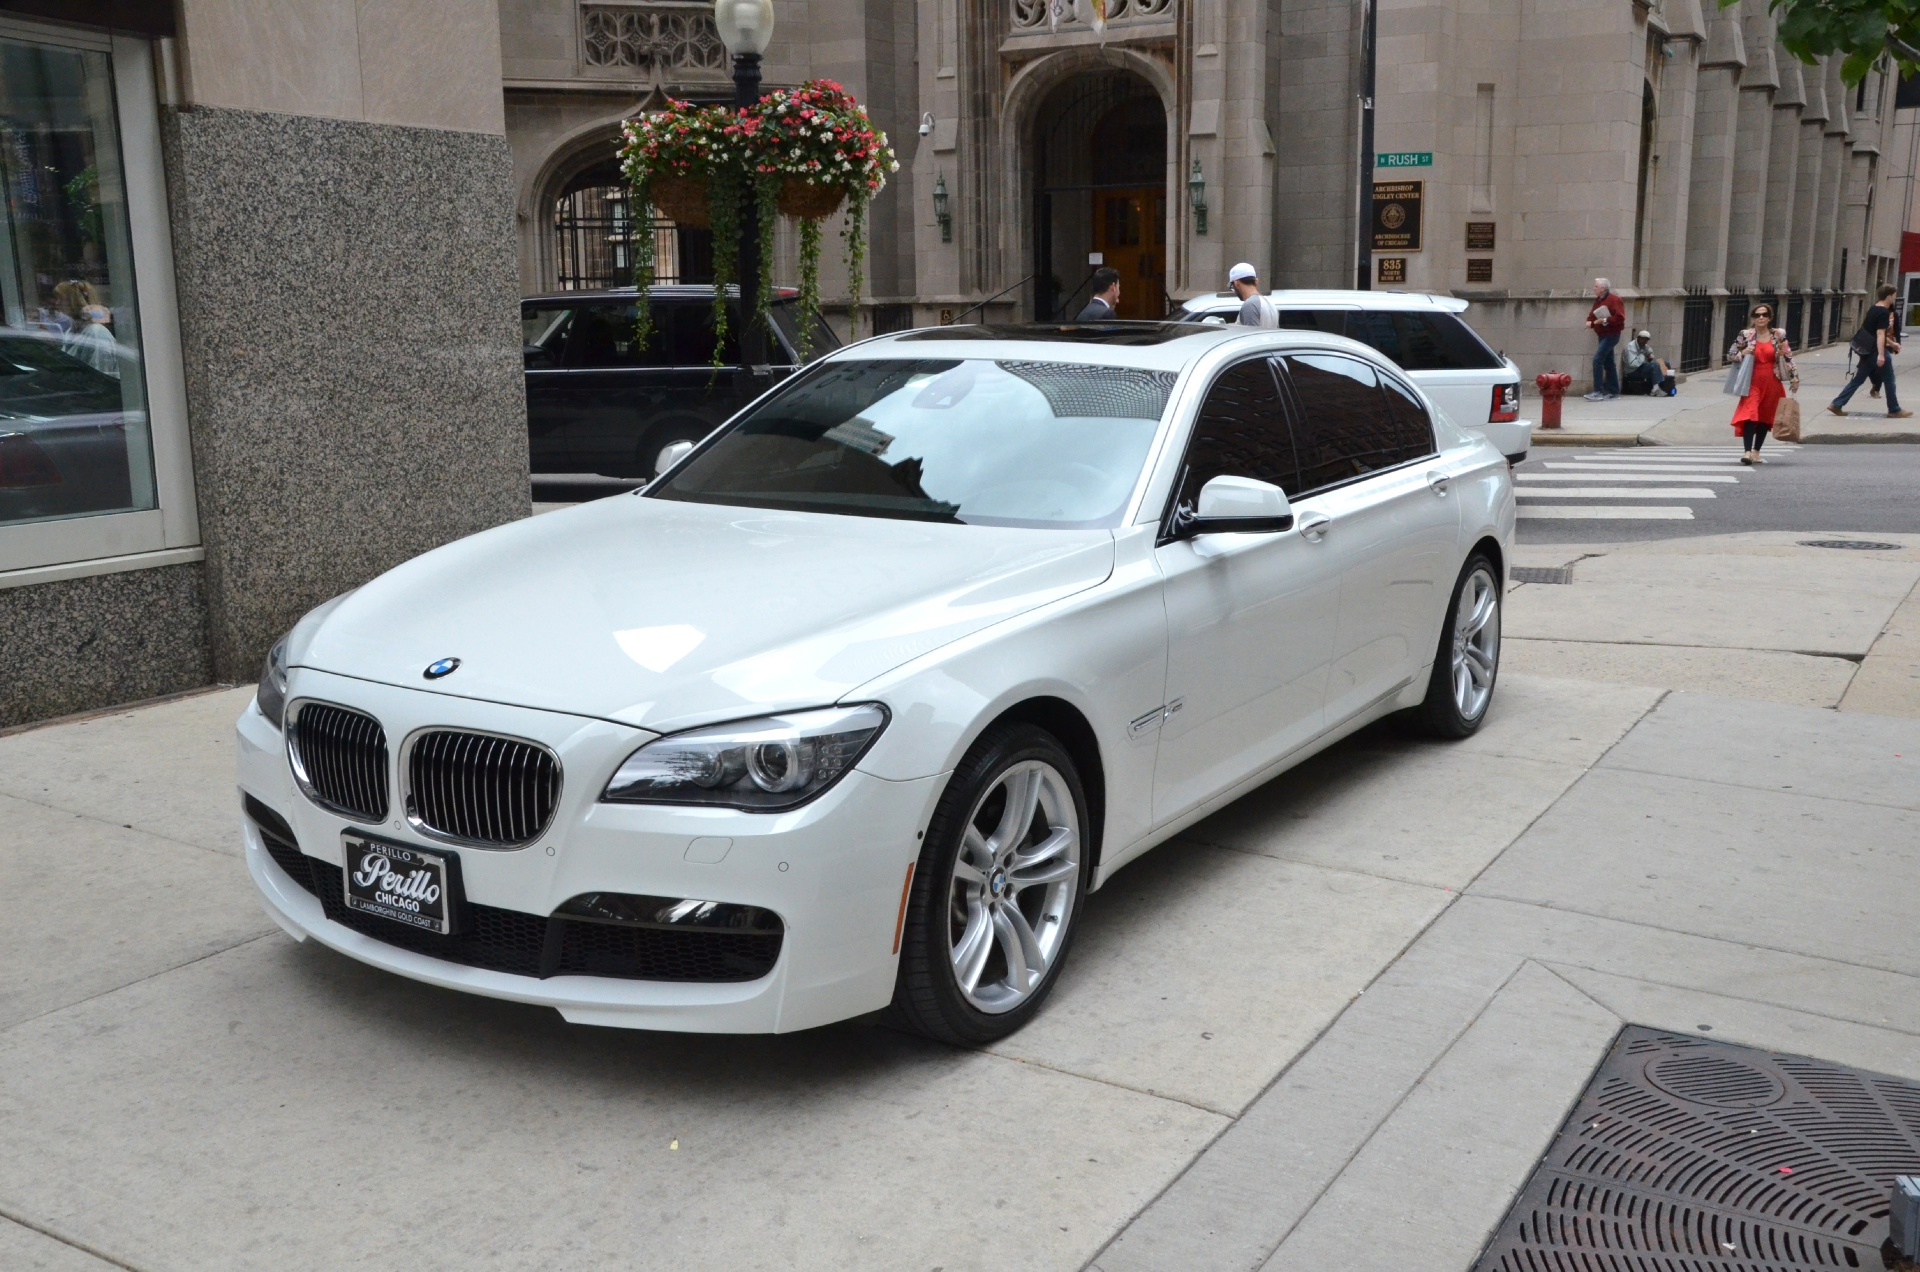 2012 Bmw 7 Series 750li Xdrive Stock 36961 For Sale Near Chicago